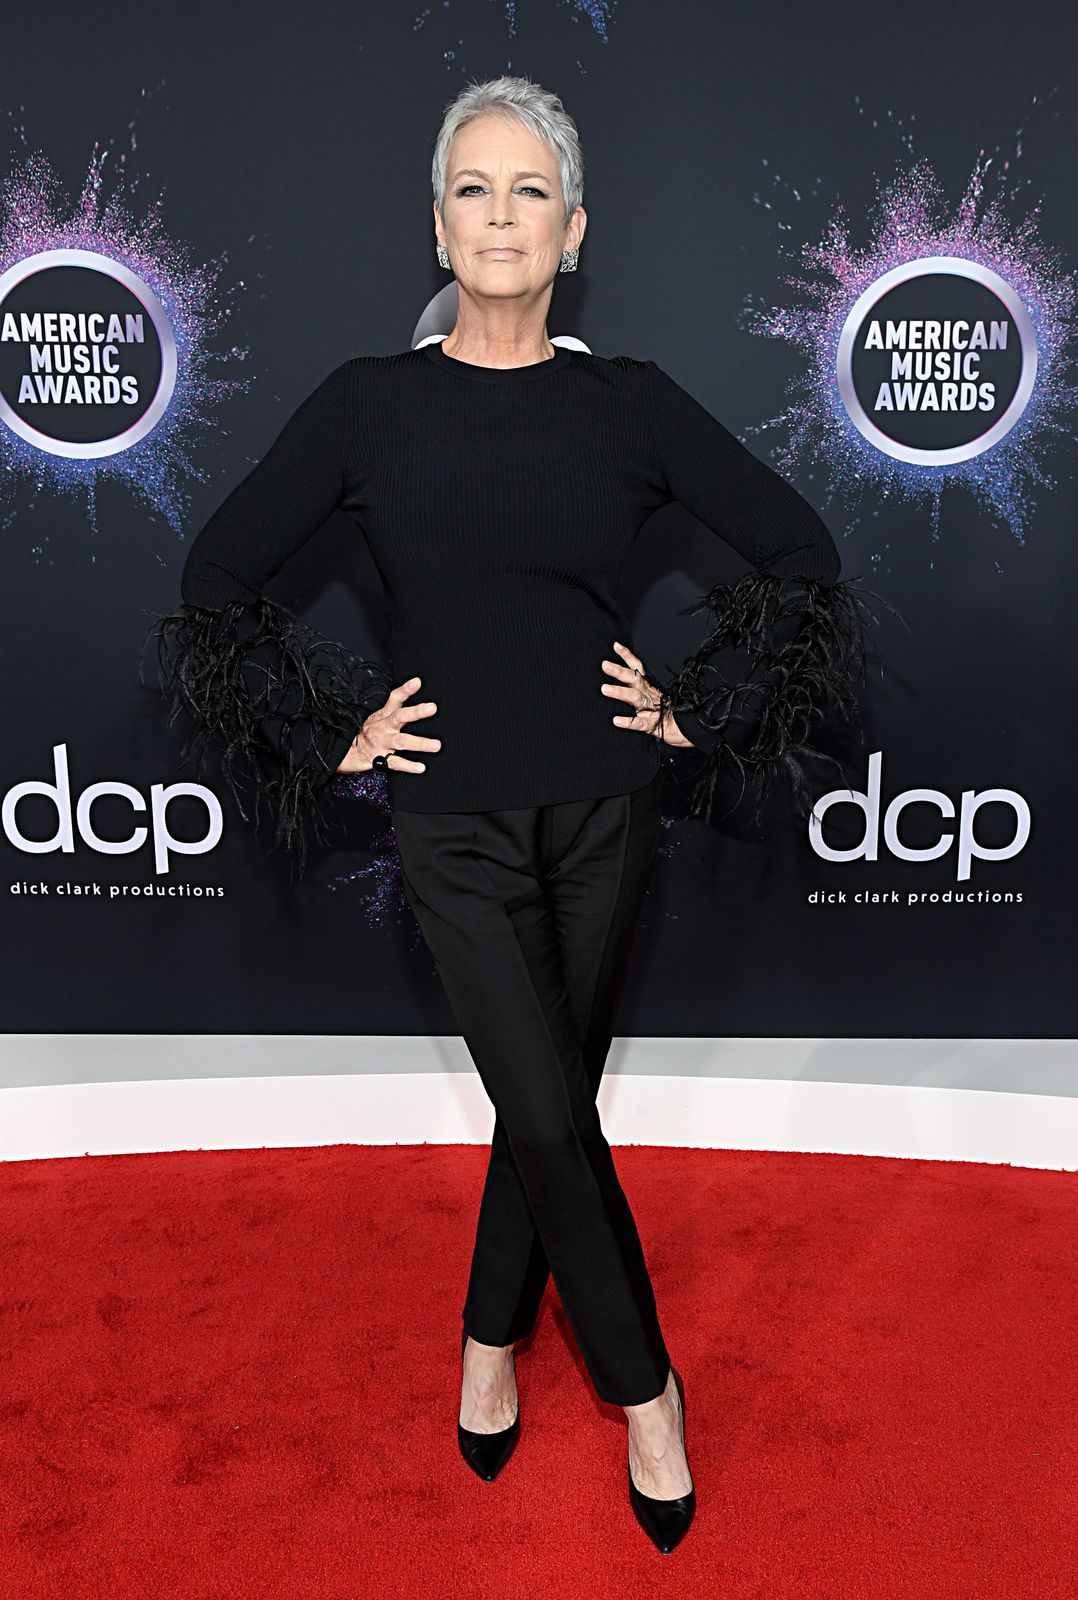 Jamie Lee Curtis at the American Music Awards at Microsoft Theater on November 24, 2019, in Los Angeles, California | Photo: Kevin Mazur/Getty Images